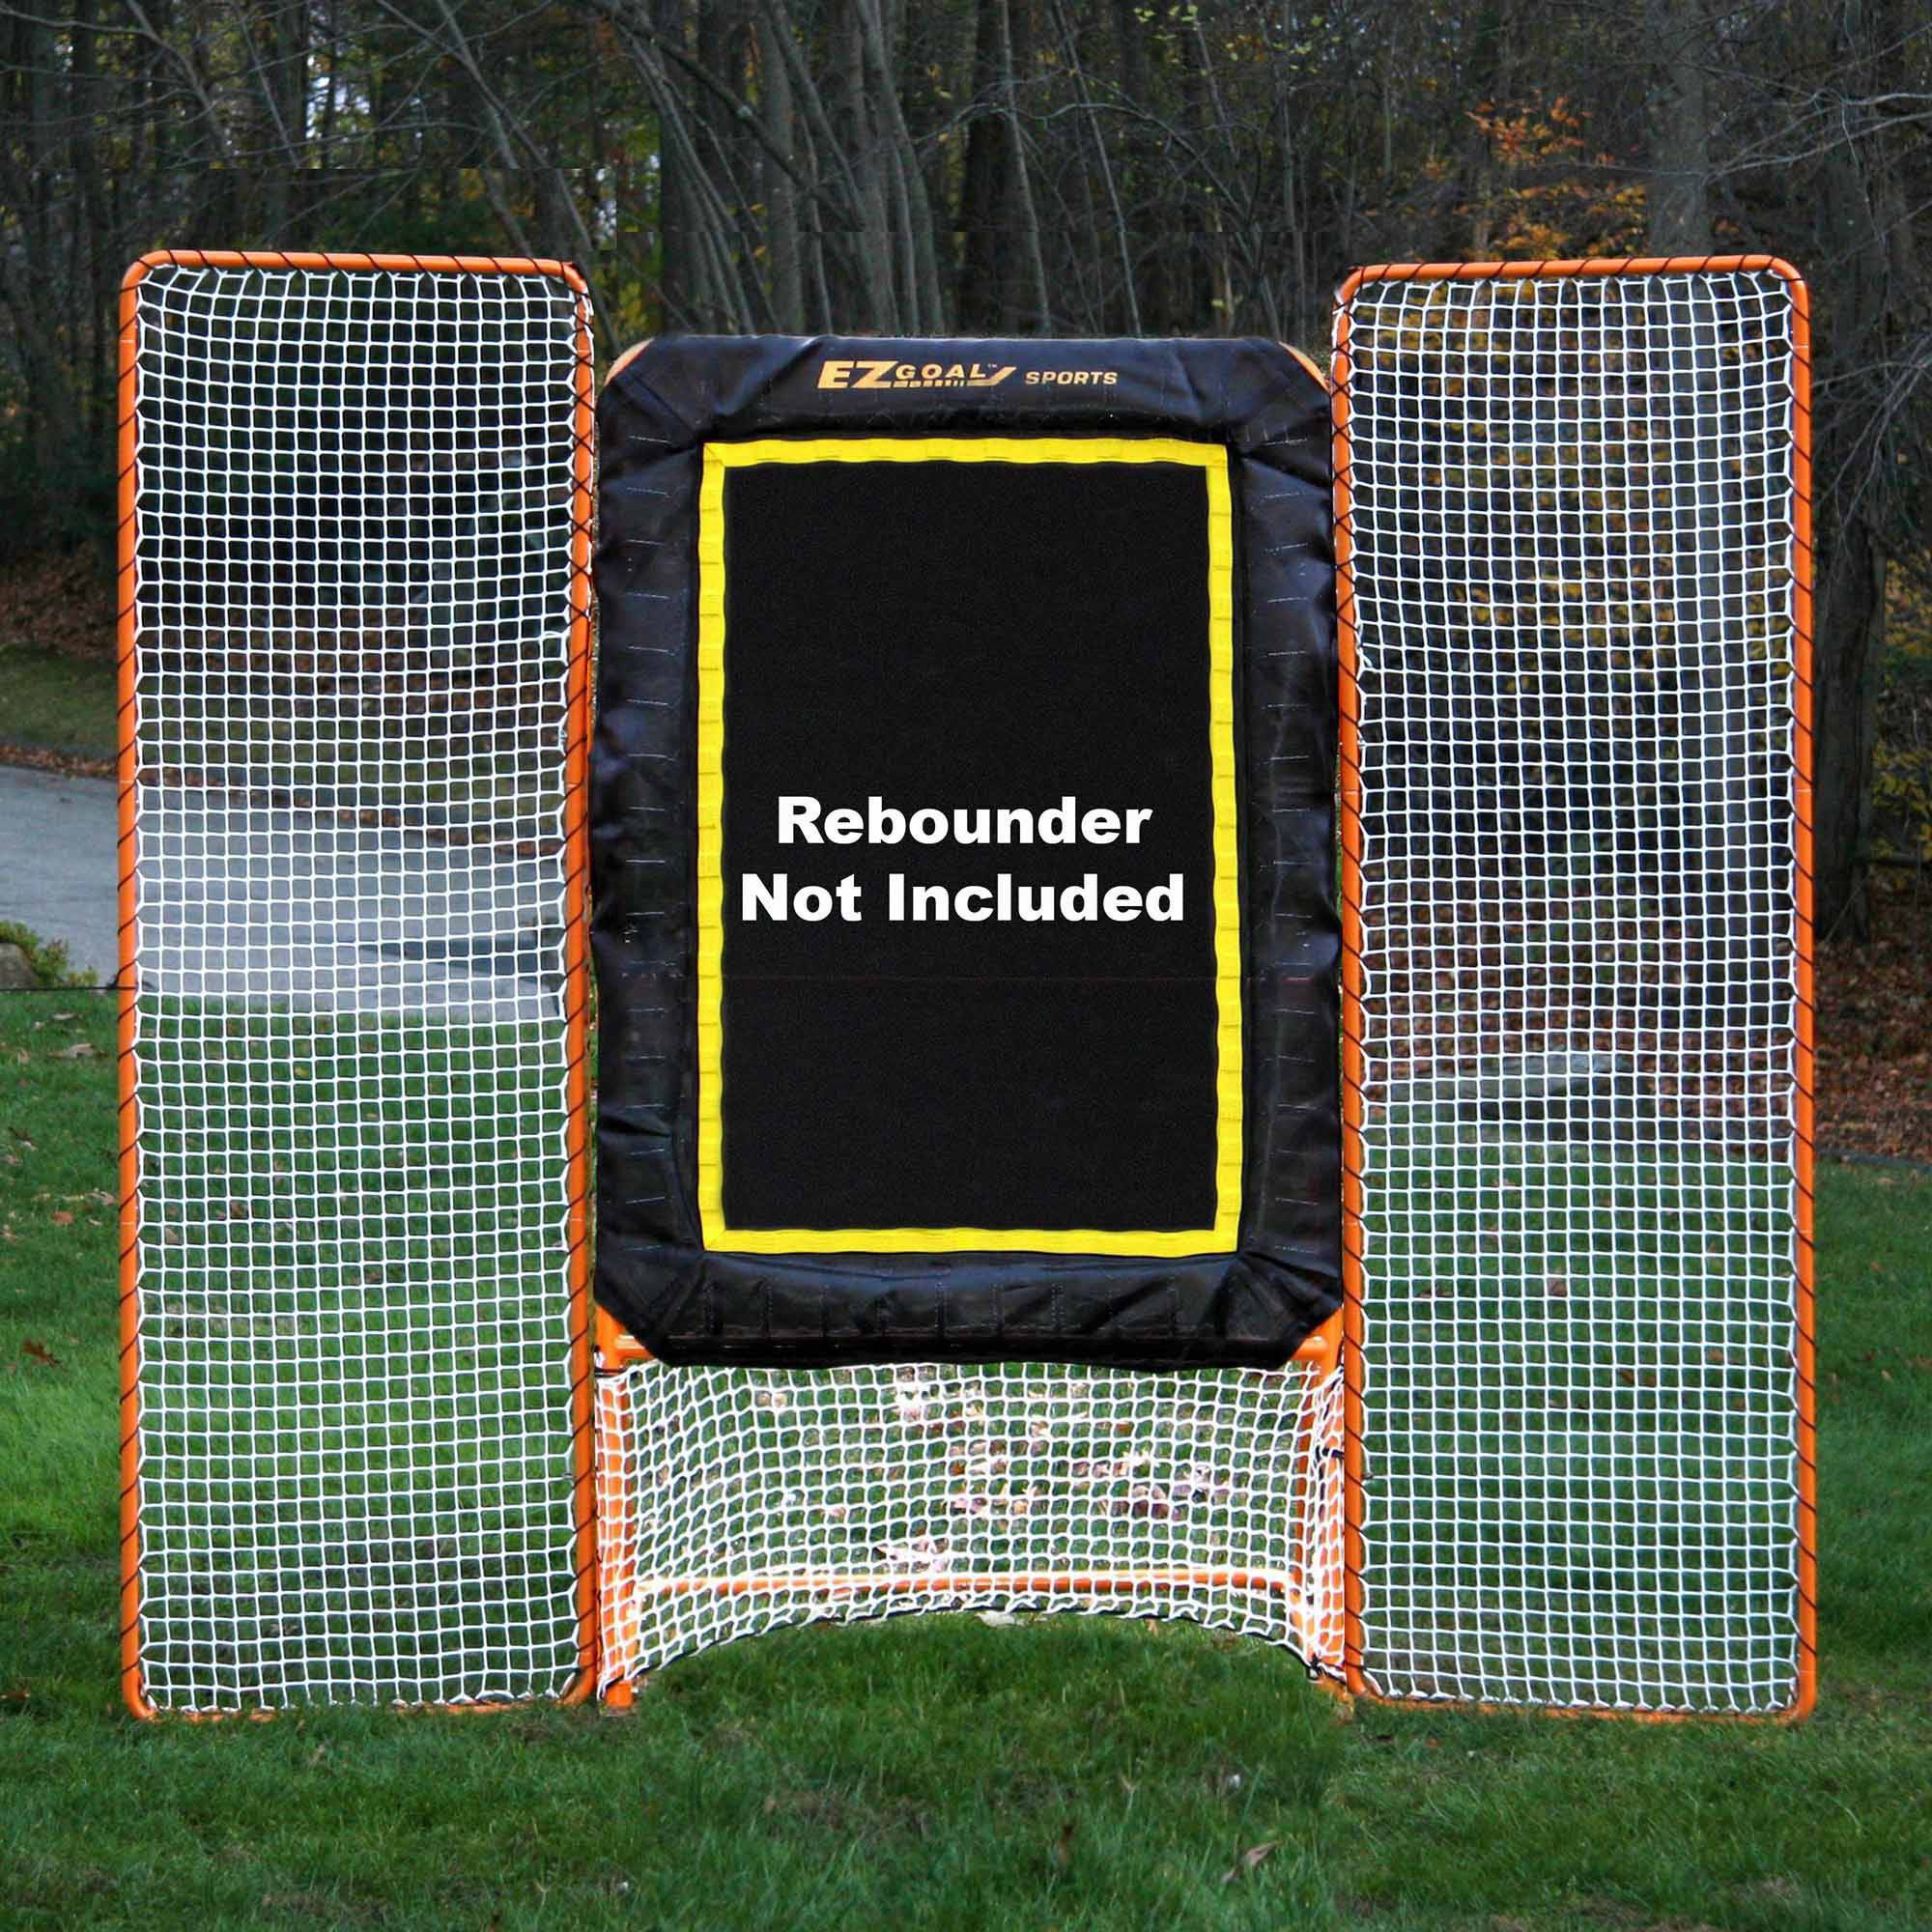 EZgoal Monster Lacrosse 11' x 8' Backstop Rebounder Fits All 6' x 6' Goals and EZgoal Pro 4' x 8' Spring Rebounders